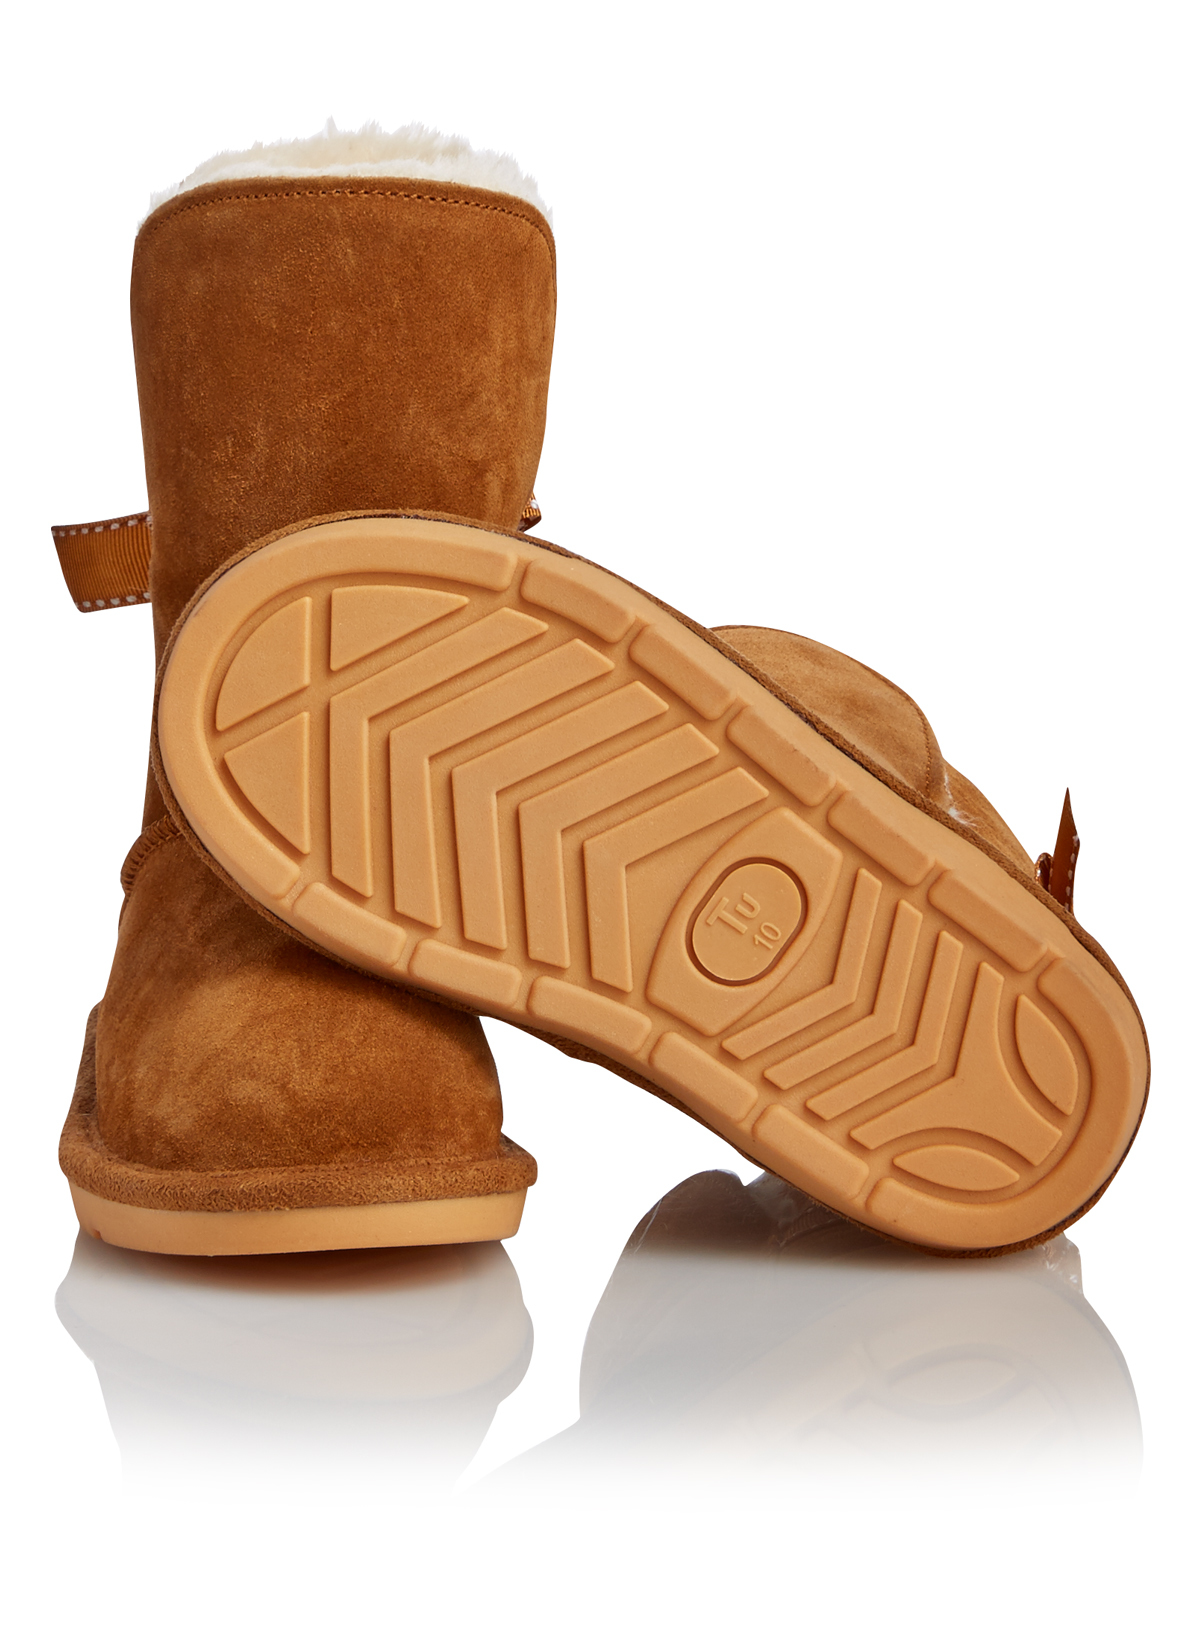 All Girl's Clothing Girls Tan Fur Boots | Tu clothing